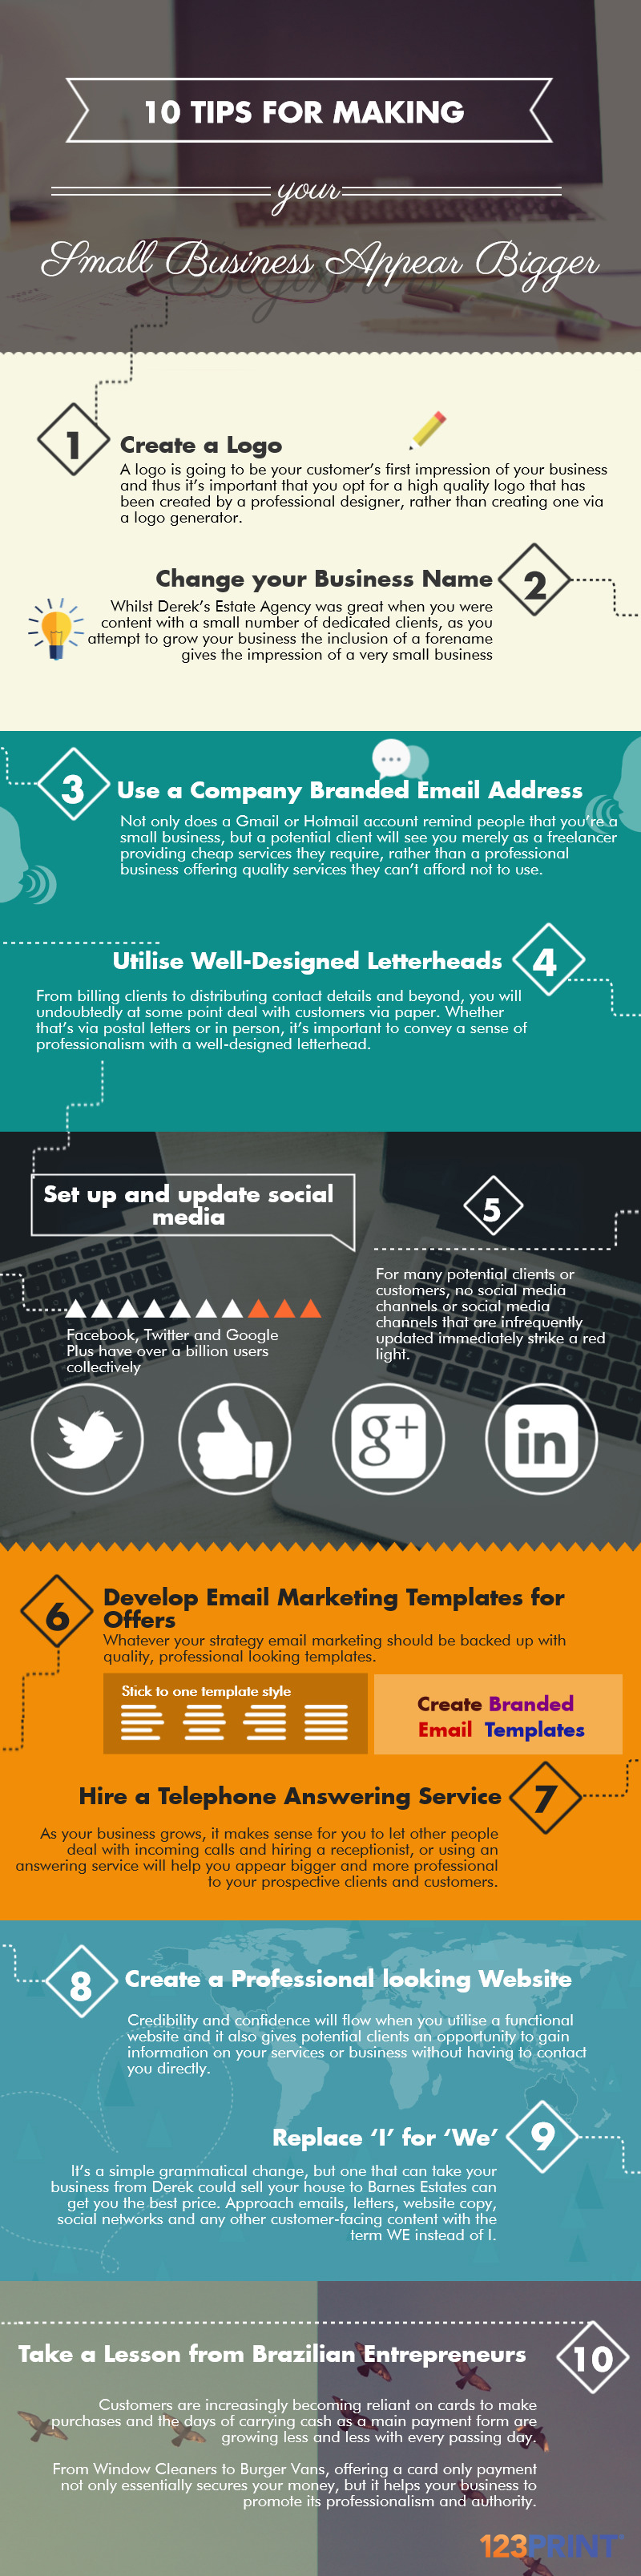 10 Tips Infographic